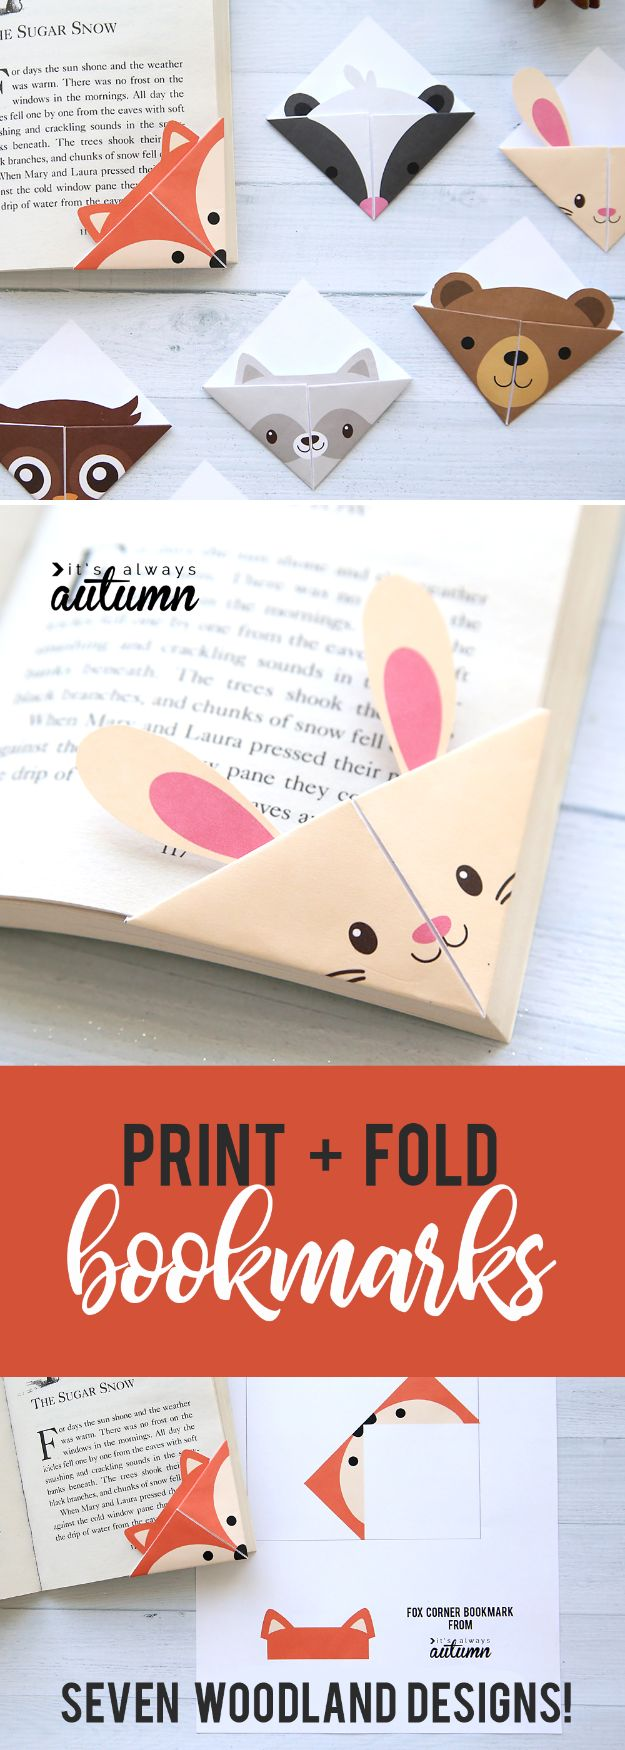 Paper Crafts DIY - DIY Woodland Animals Origami Bookmarks - Papercraft Tutorials and Easy Projects for Make for Decoration and Gift IDeas - Origami, Paper Flowers, Heart Decoration, Scrapbook Notions, Wall Art, Christmas Cards, Step by Step Tutorials for Crafts Made From Papers #crafts